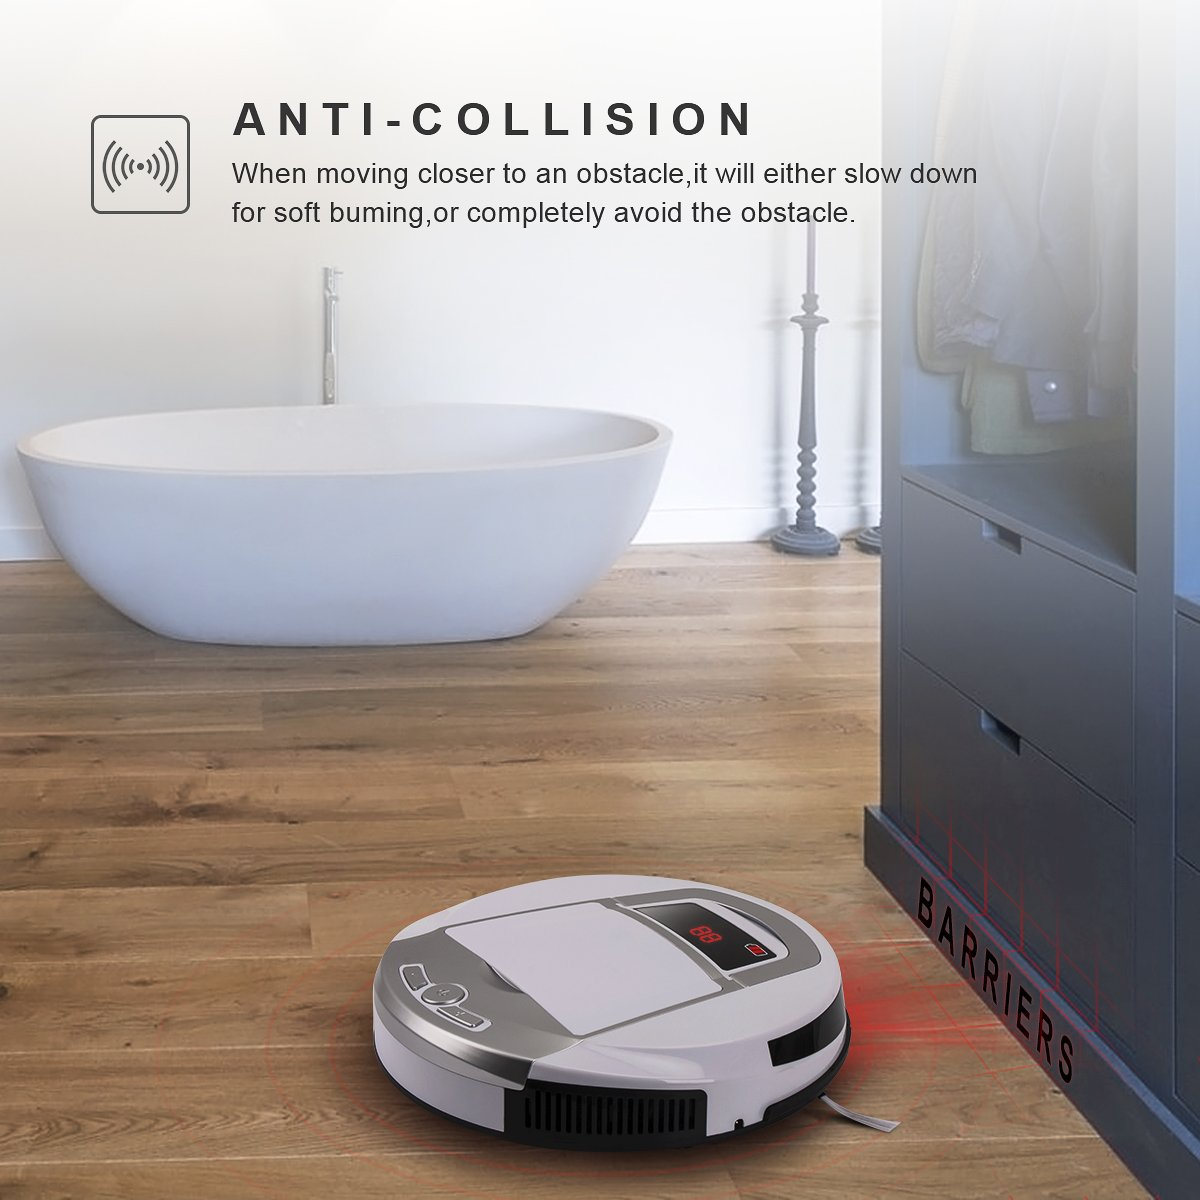 Robotic Vacuum Cleaner, Rechargeable Robotic Vacuum with Strong Suction and HEPA Double Filter, Anti-Cliff and Anti-Bump Sensor Robot for Pet Hair, Fur, Allergens, Thin Carpet, Hardwood and Tile Floor by FORTUNE DRAGON (Image #7)